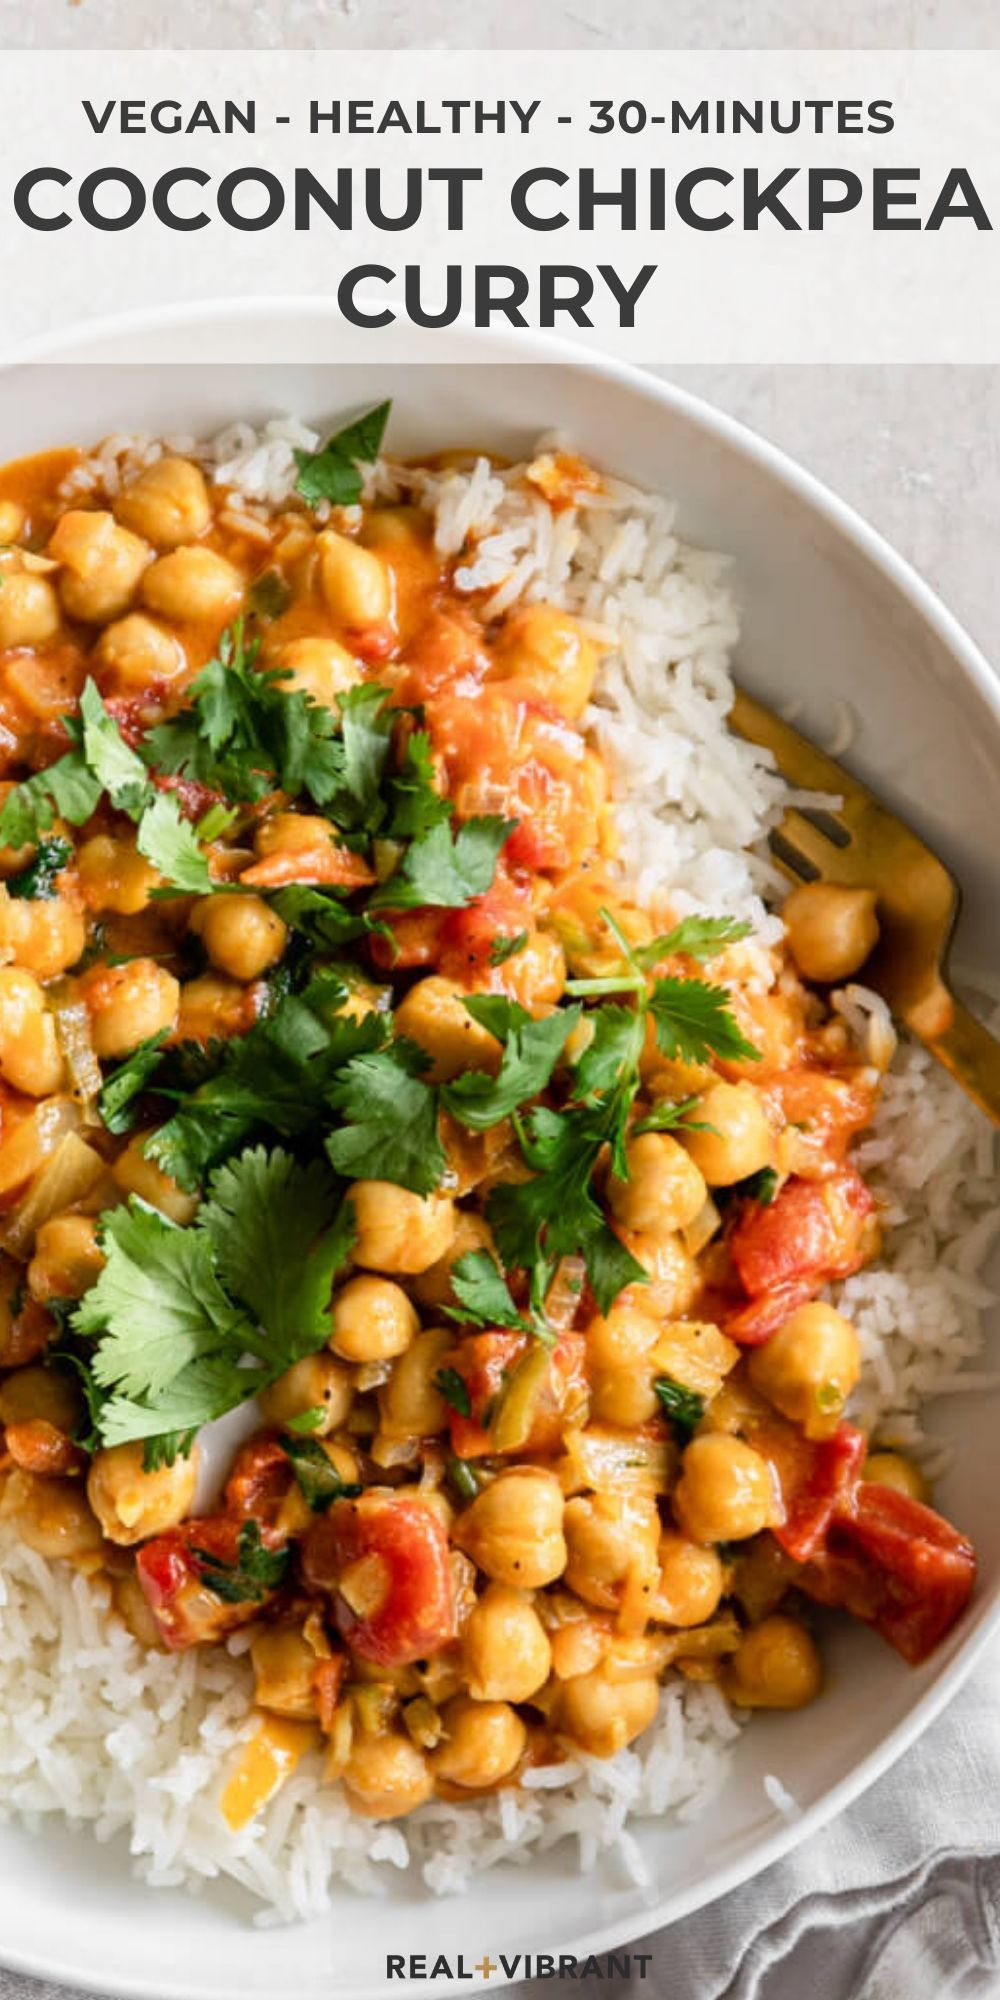 Coconut Chickpea Curry (30 Minutes, Vegan)